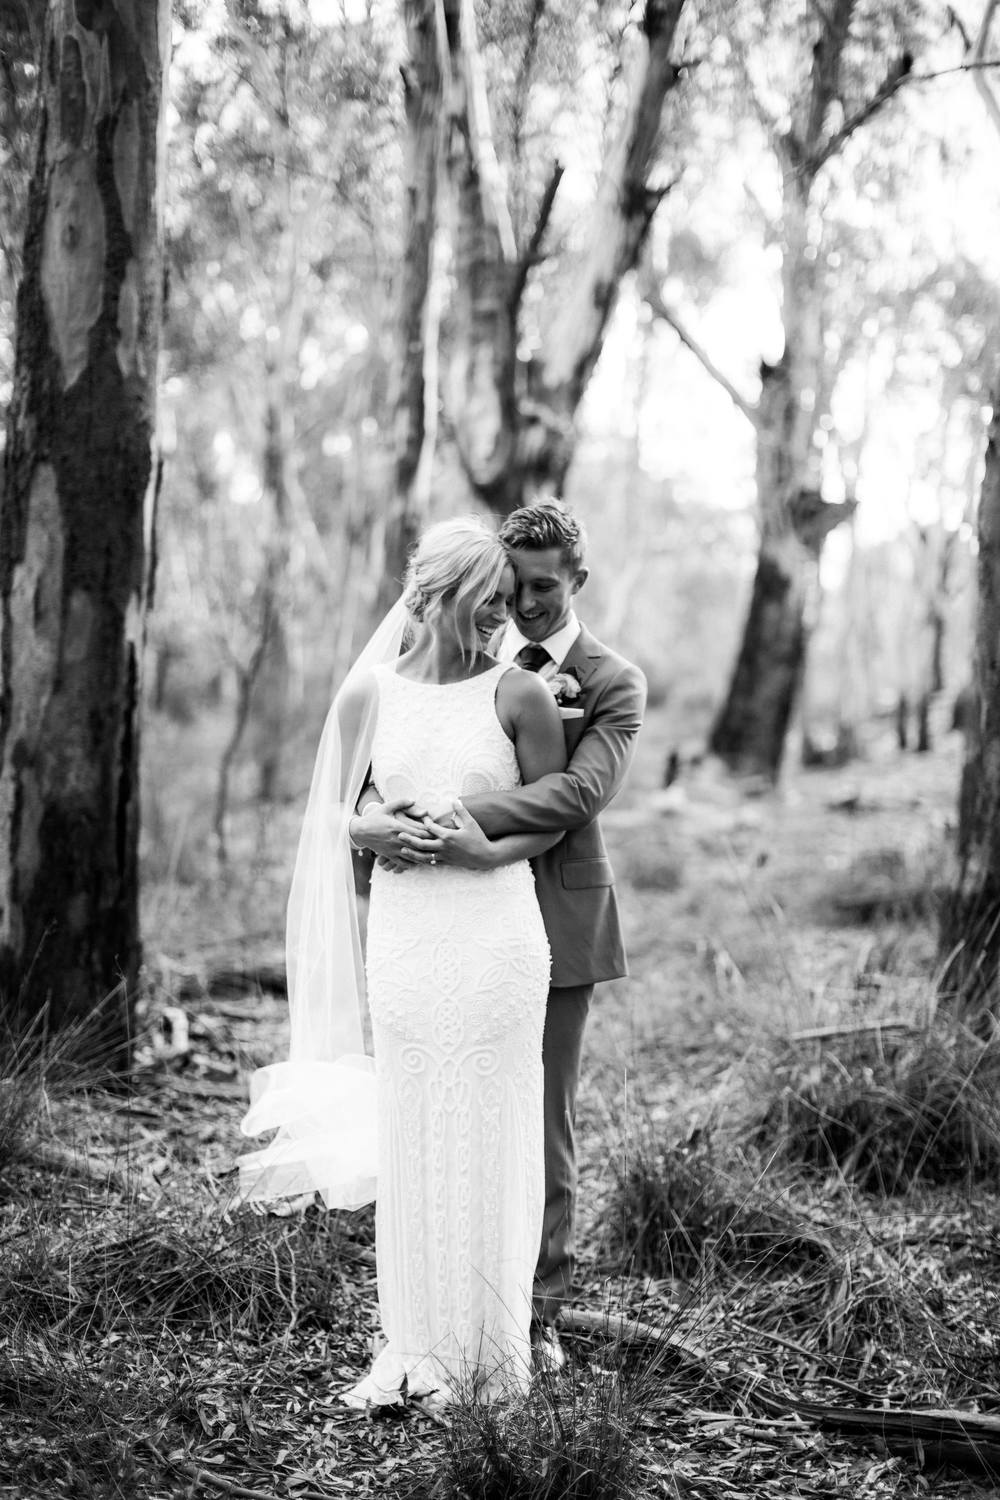 JuliaArchibald_WeddingPhotography_Melbourne_Australia_34.jpg